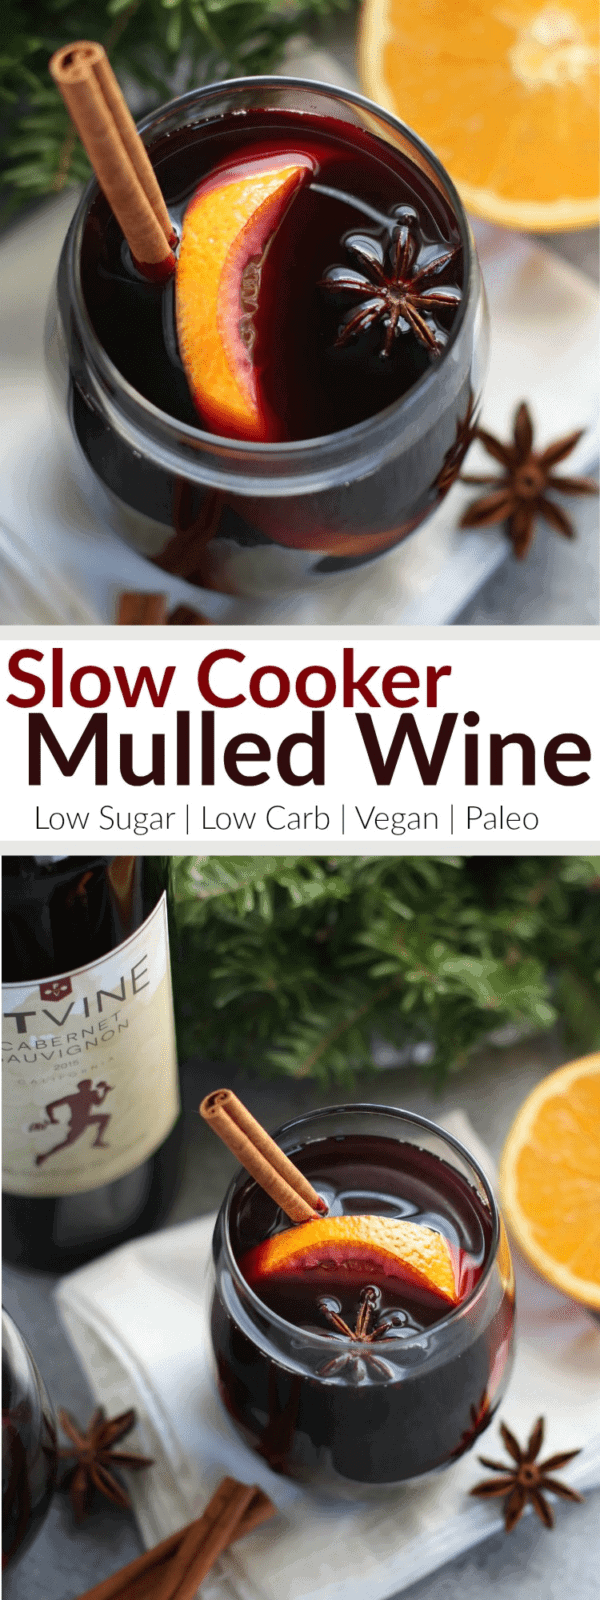 Slow Cooker Mulled Wine | Low-sugar | healthy holiday drinks | homemade mulled wine | homemade holiday drinks | low carb holiday drinks | vegan holiday drinks | paleo holiday drinks || The Real Food Dietitians #mulledwine #healthyholidays #lowsugar #lowcarbdrinks